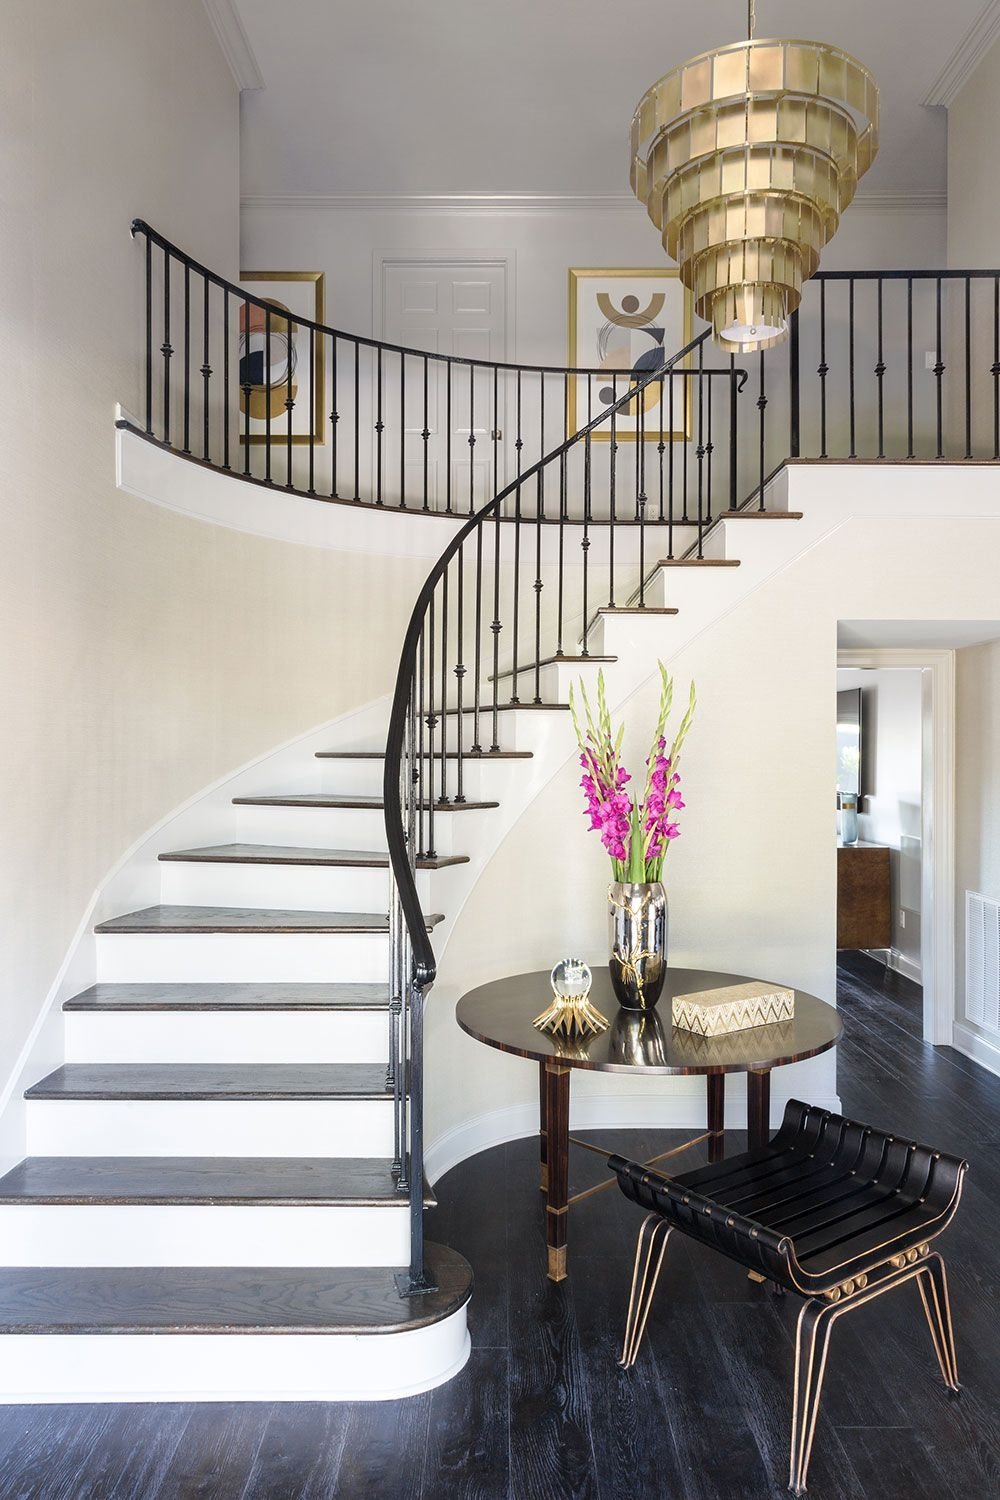 25 Pretty Painted Stair Ideas Creative Ways To Paint A Staircase   Best Stair Design For Small House   Stair Railing   Space   Space Saving Staircase   Stair Case   Loft Stairs